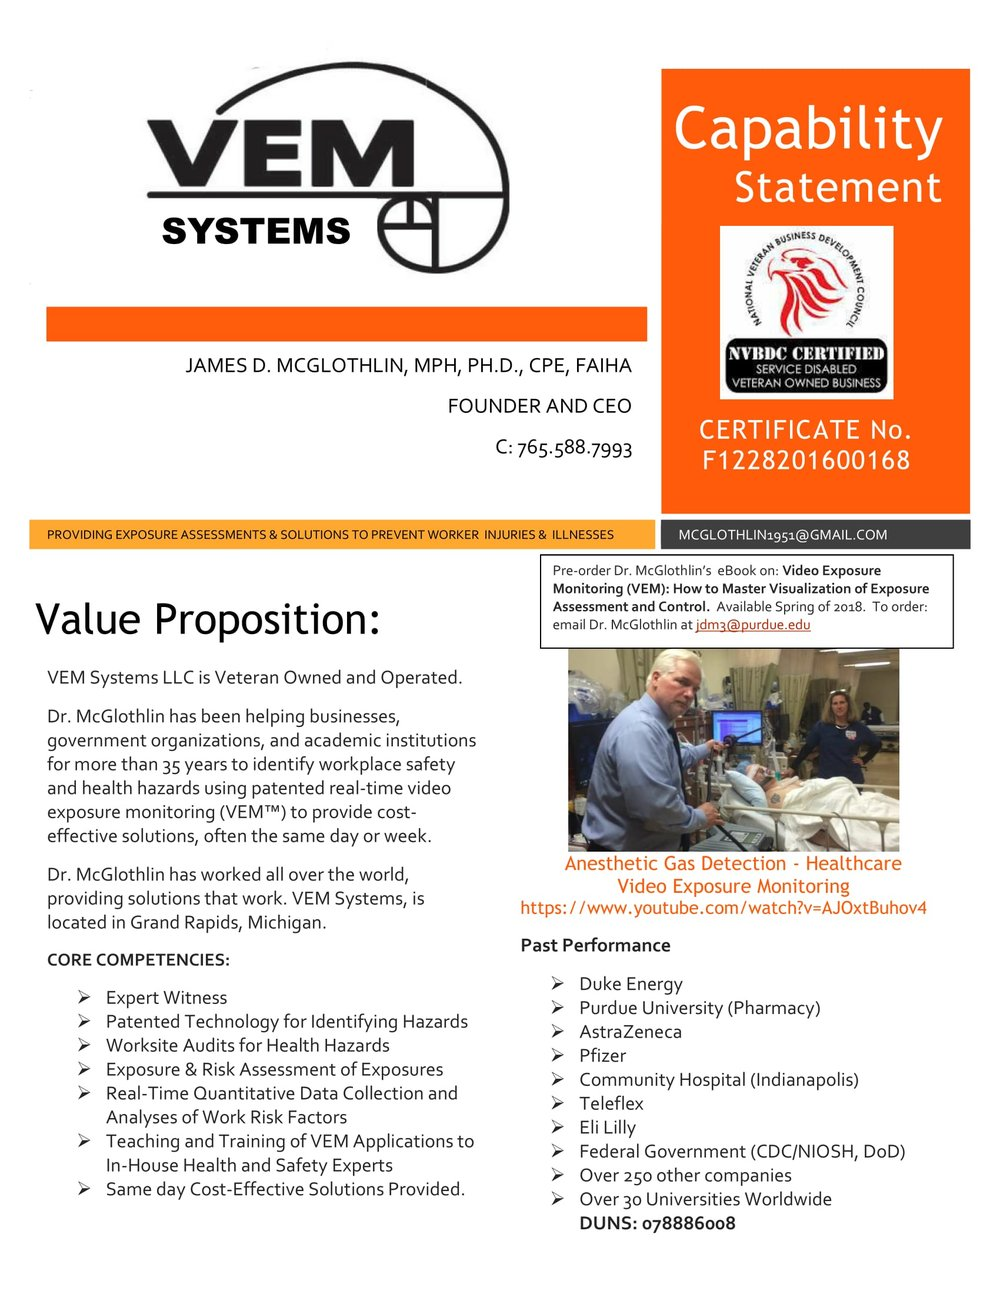 VEMValueProposition-1.jpg